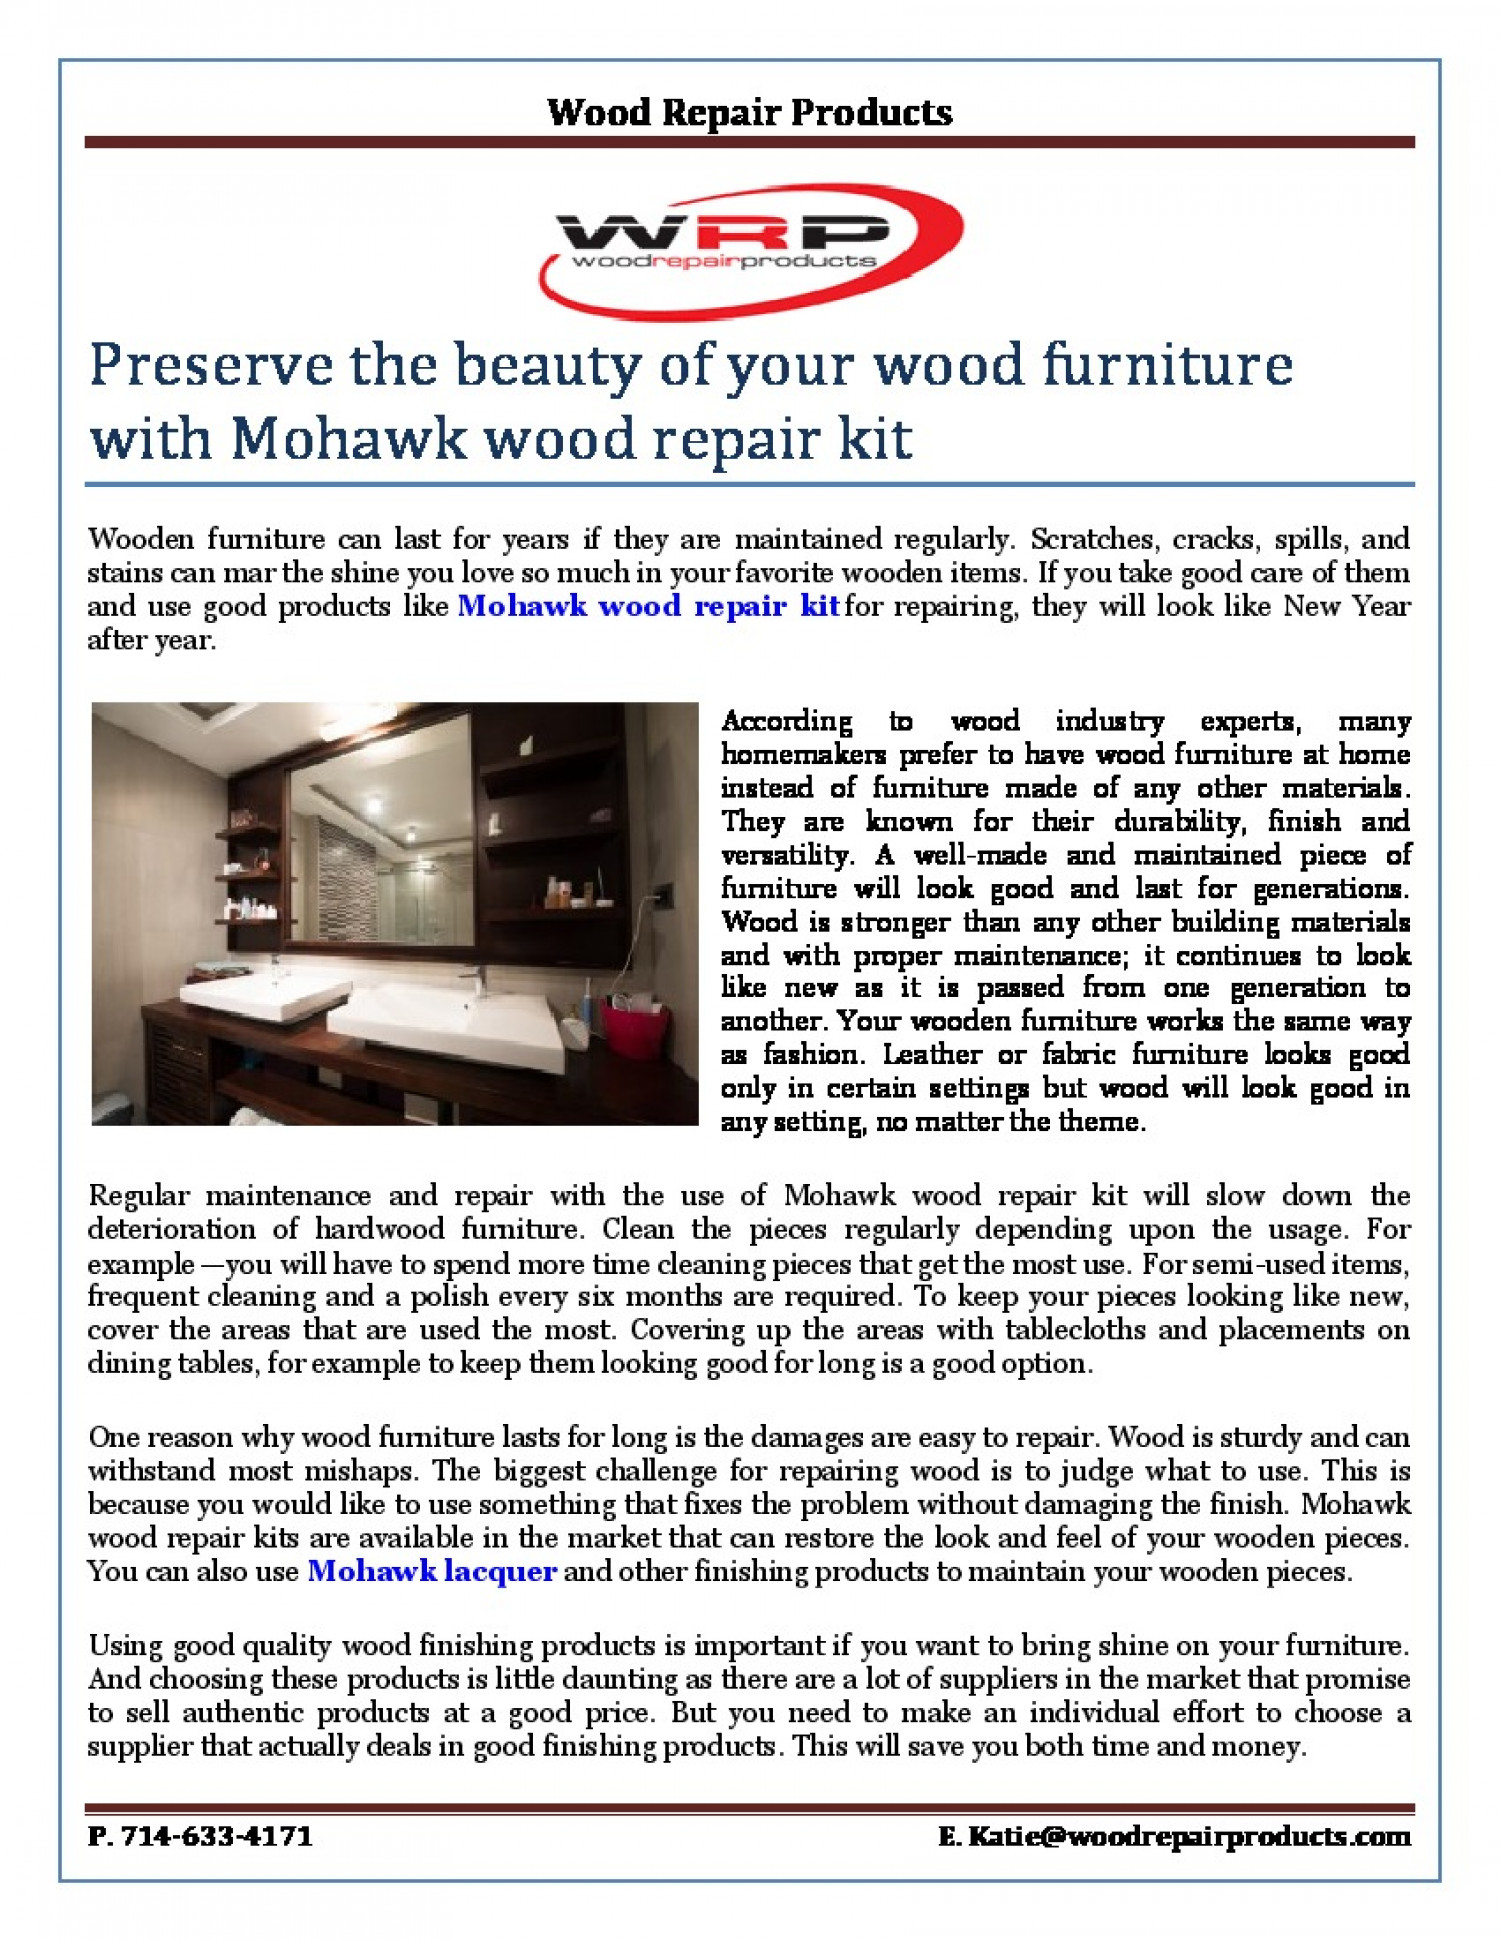 Preserve the beauty of your wood furniture with mohawk wood repair kit Infographic